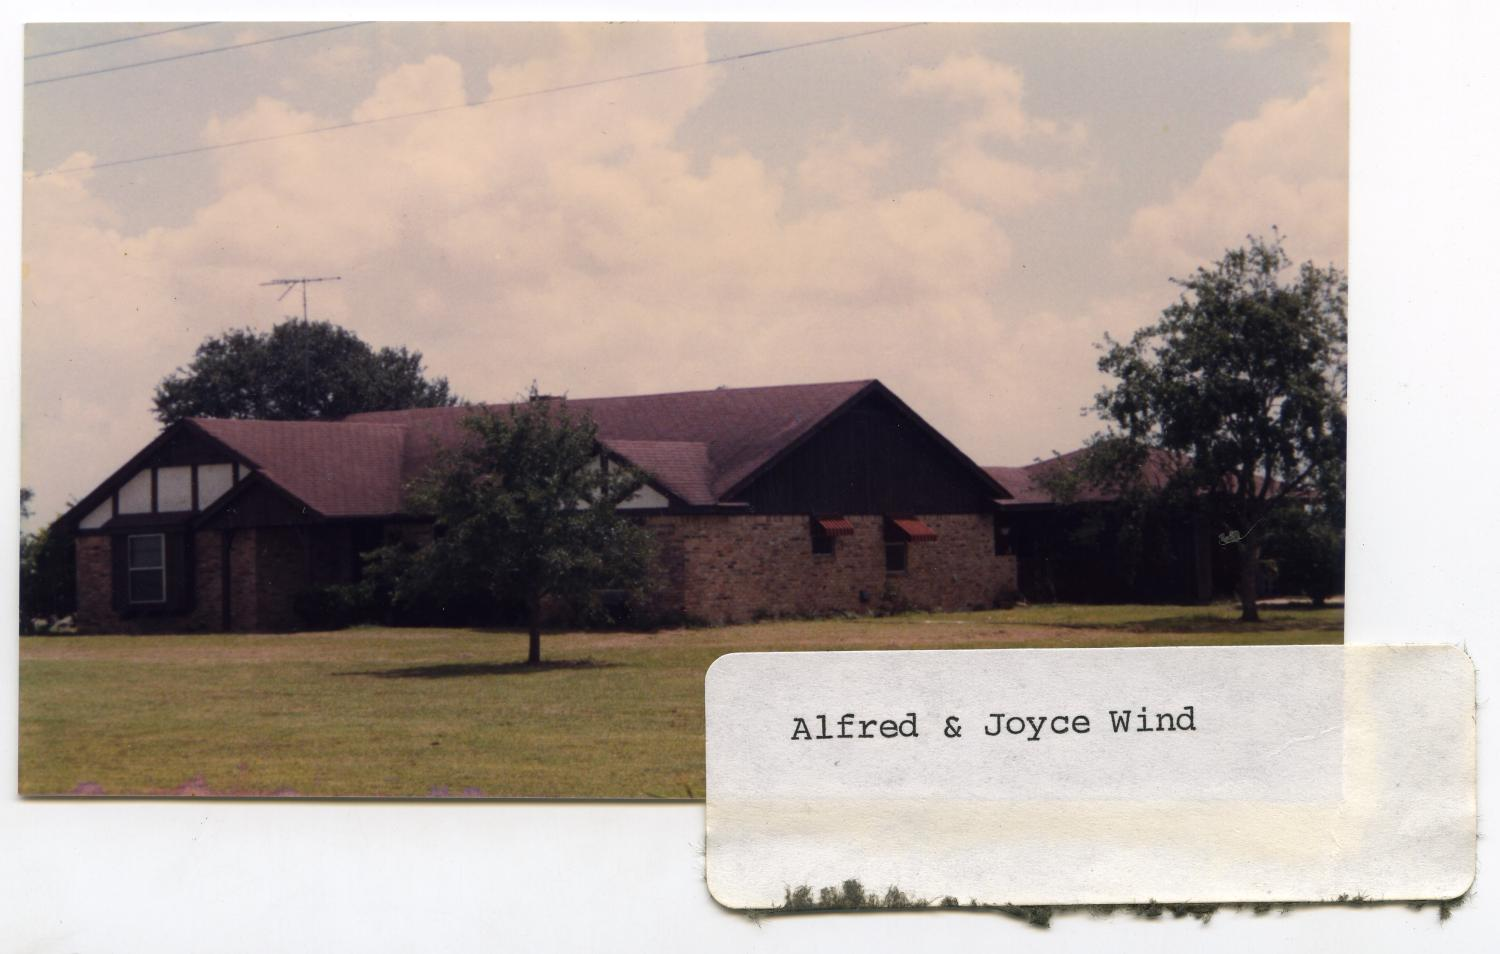 Alfred & Joyce Wind Home                                                                                                      [Sequence #]: 1 of 2